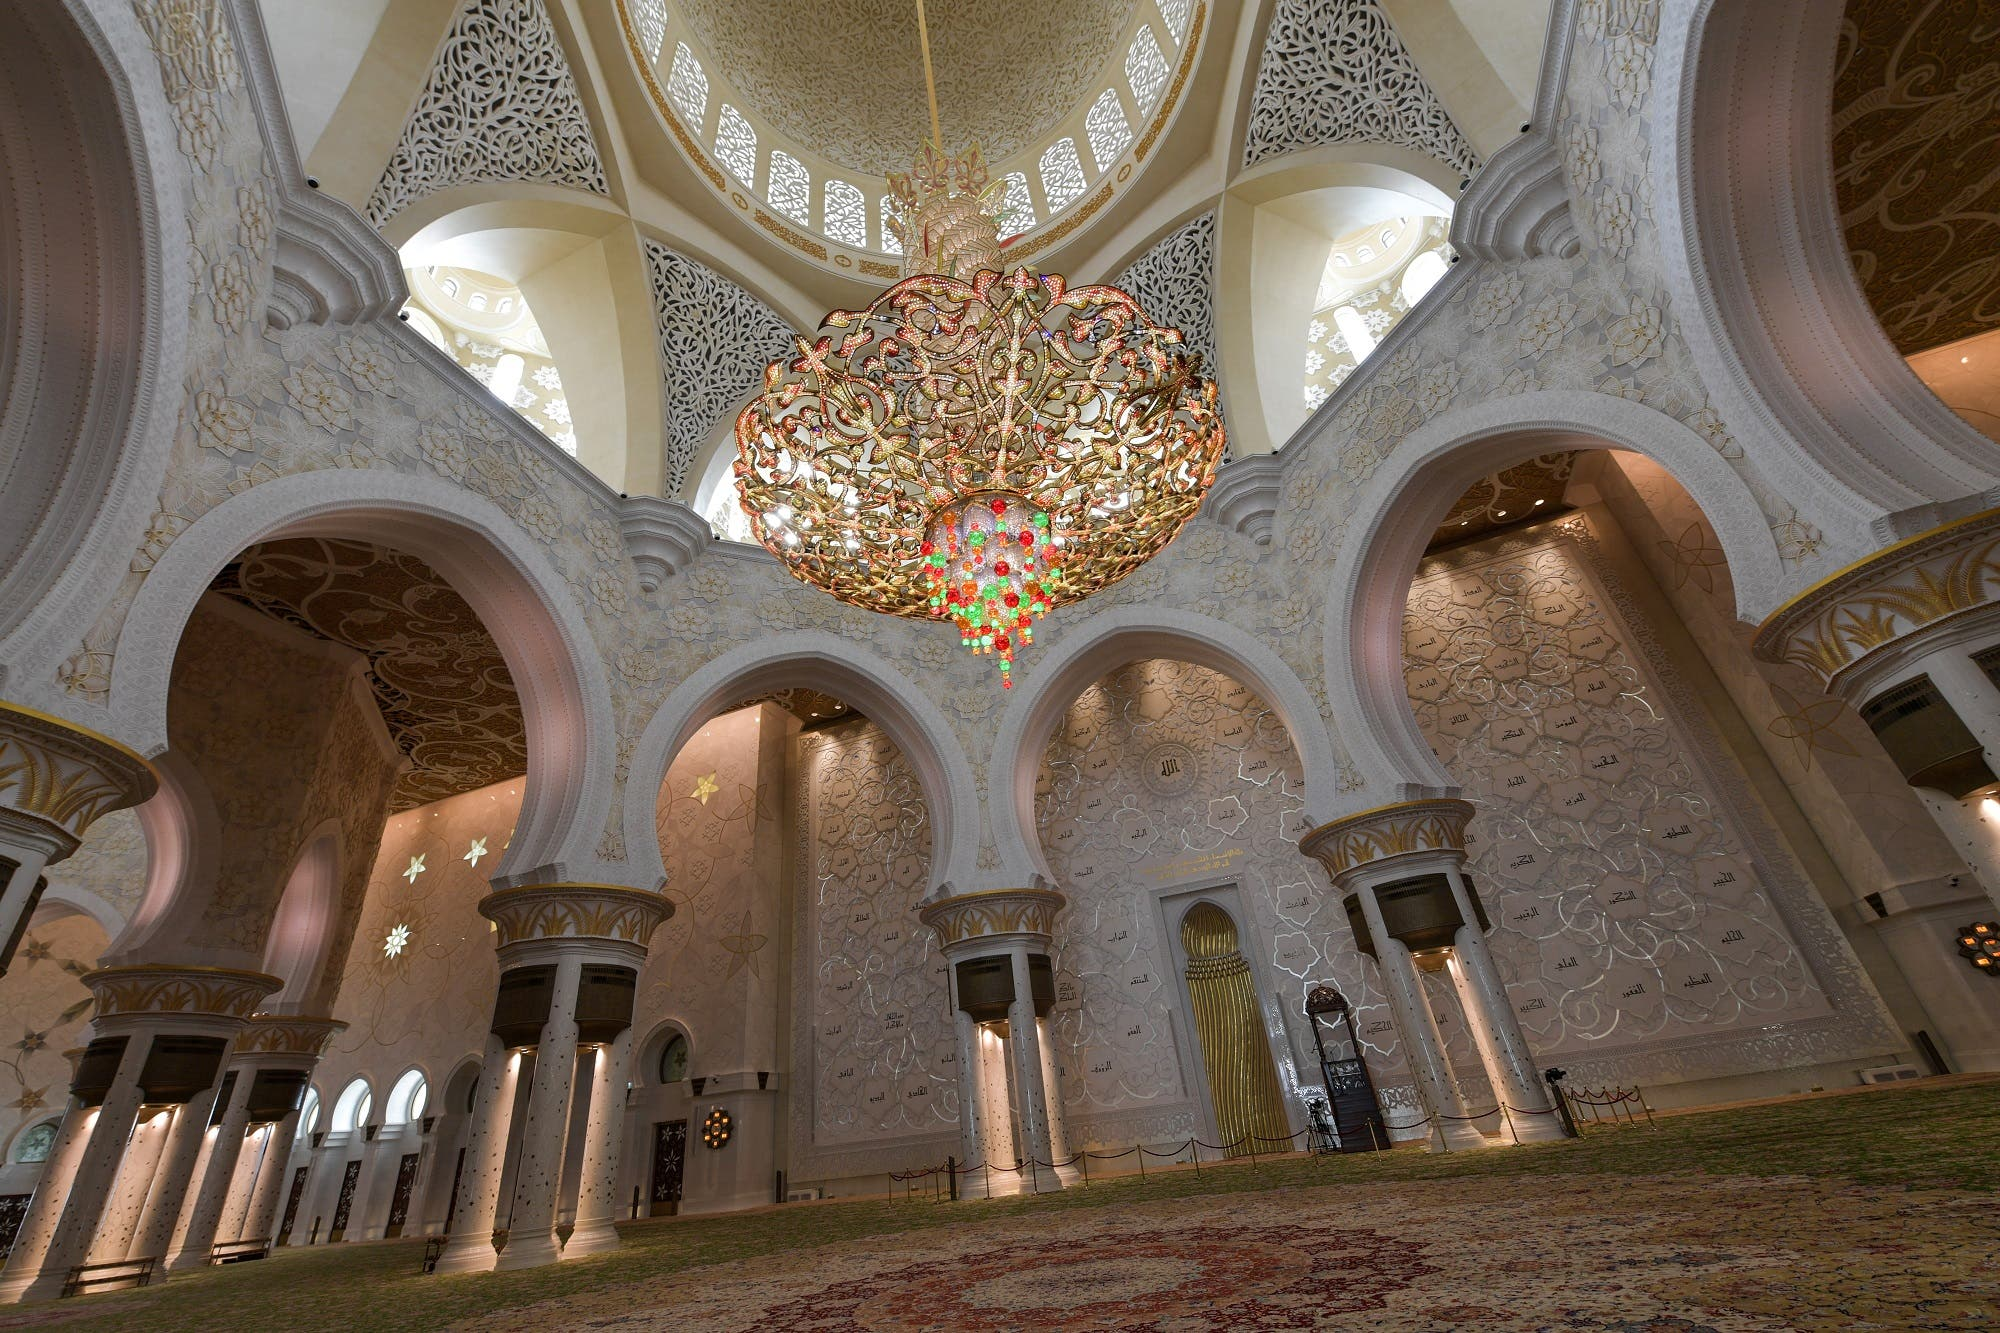 A picture taken on November 17, 2017 shows a view of the interior of the Sheikh Zayed Grand Mosque in the UAE capital Abu Dhabi. (AFP)